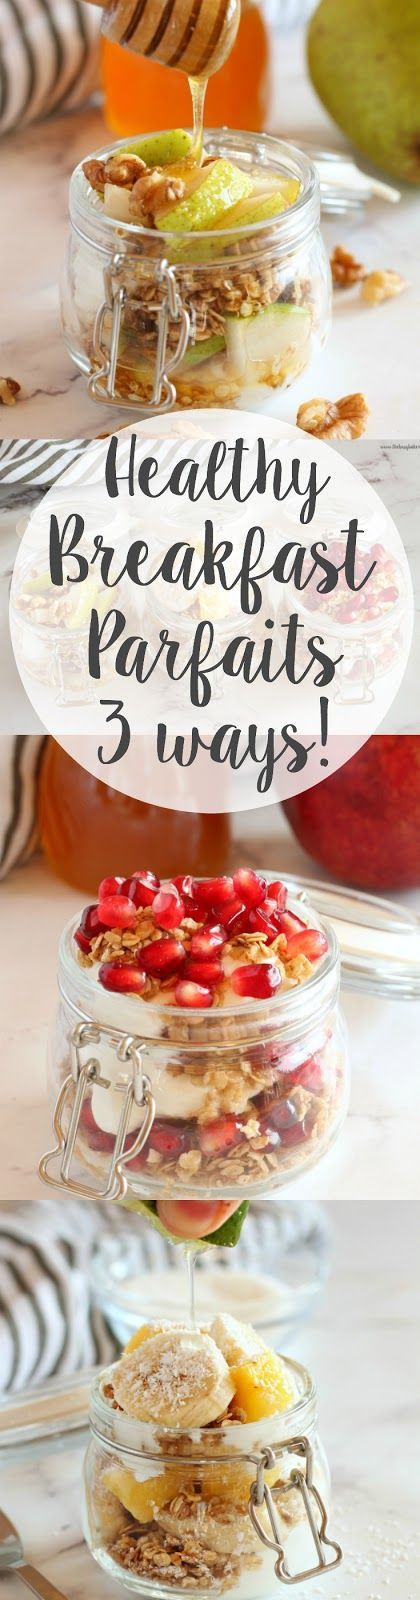 Healthy Fruit, Yogurt, and Granola Parfaits - 3 ways! AND a super delicious BASIC HOMEMADE GRANOLA recipe!! Recipes from www.thebusybaker.ca